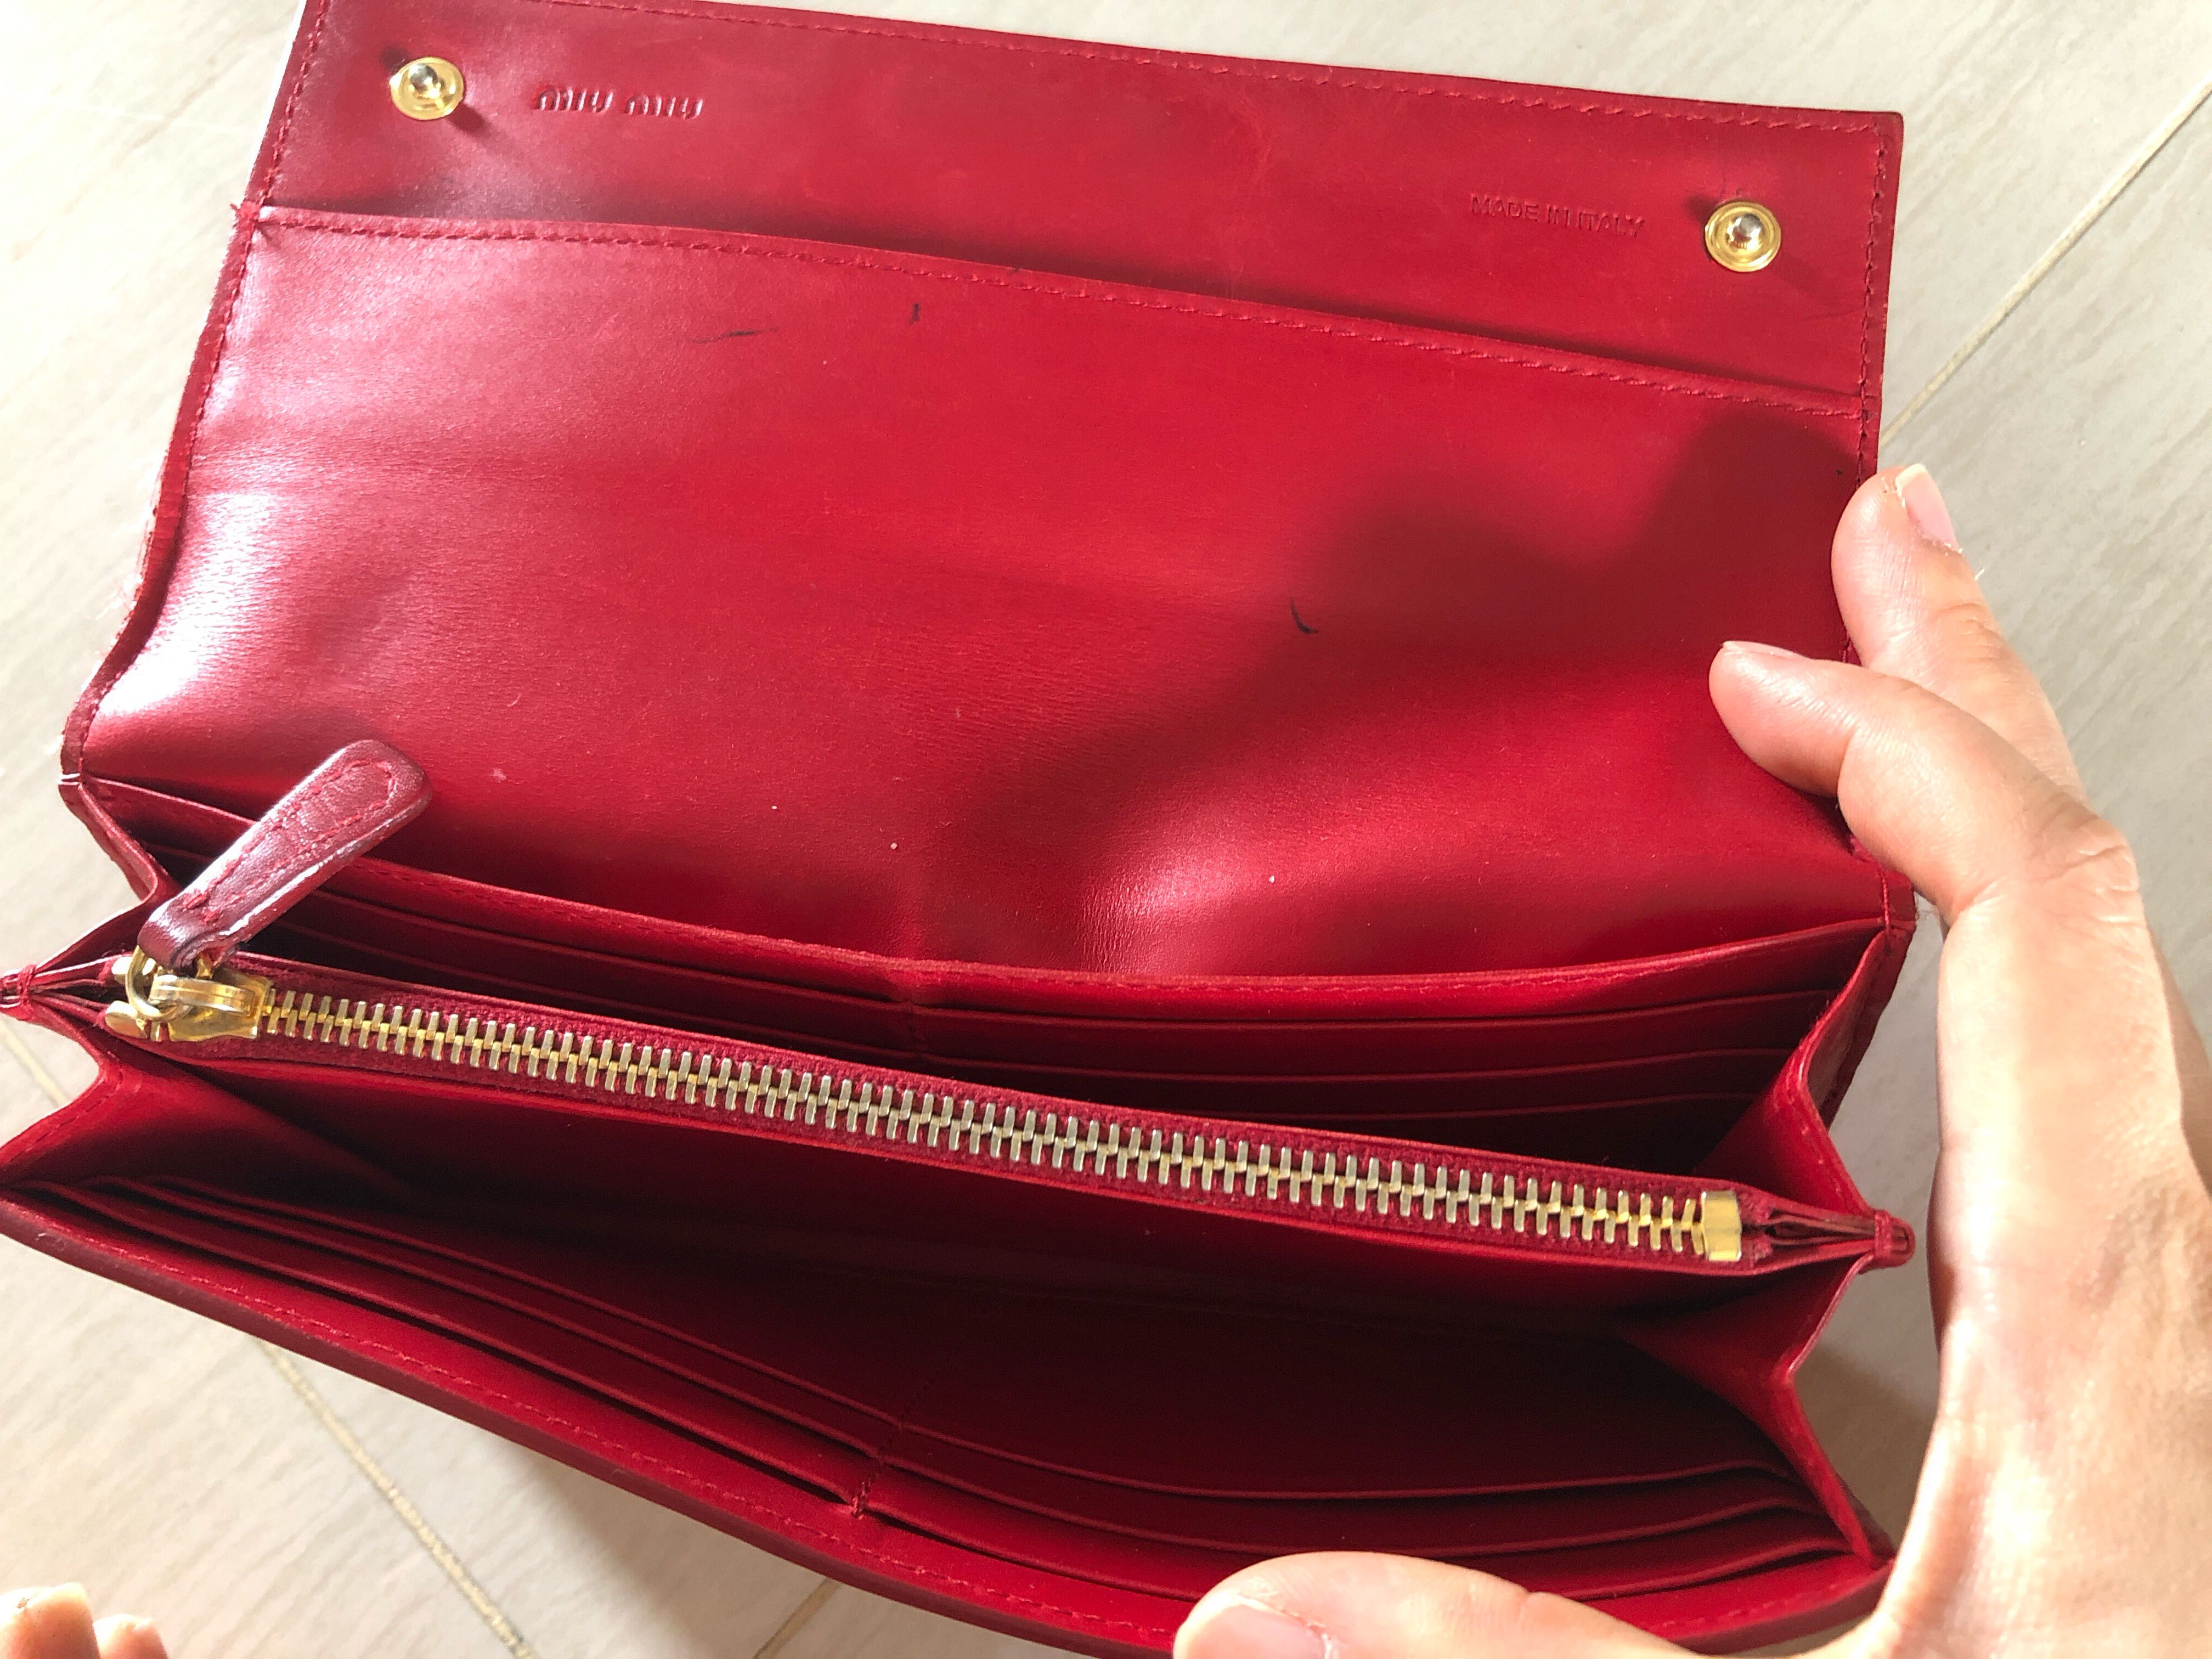 33f21062b502 miu Miu red leather wallet authentic pre loved